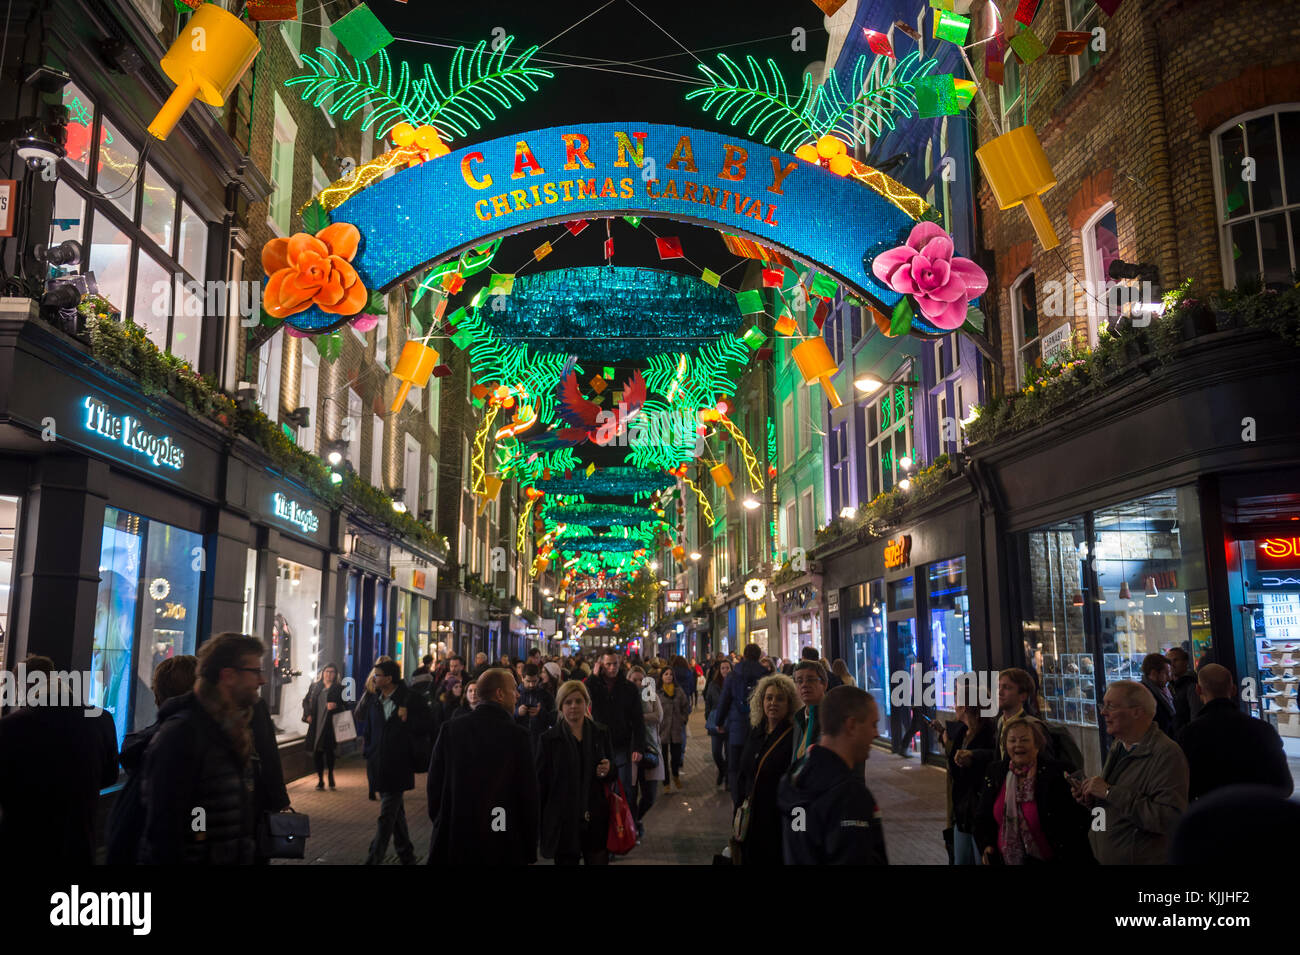 LONDON - NOVEMBER 21, 2017: Colorful Christmas holiday lights decorate Carnaby Street in the west end neighborhood - Stock Image